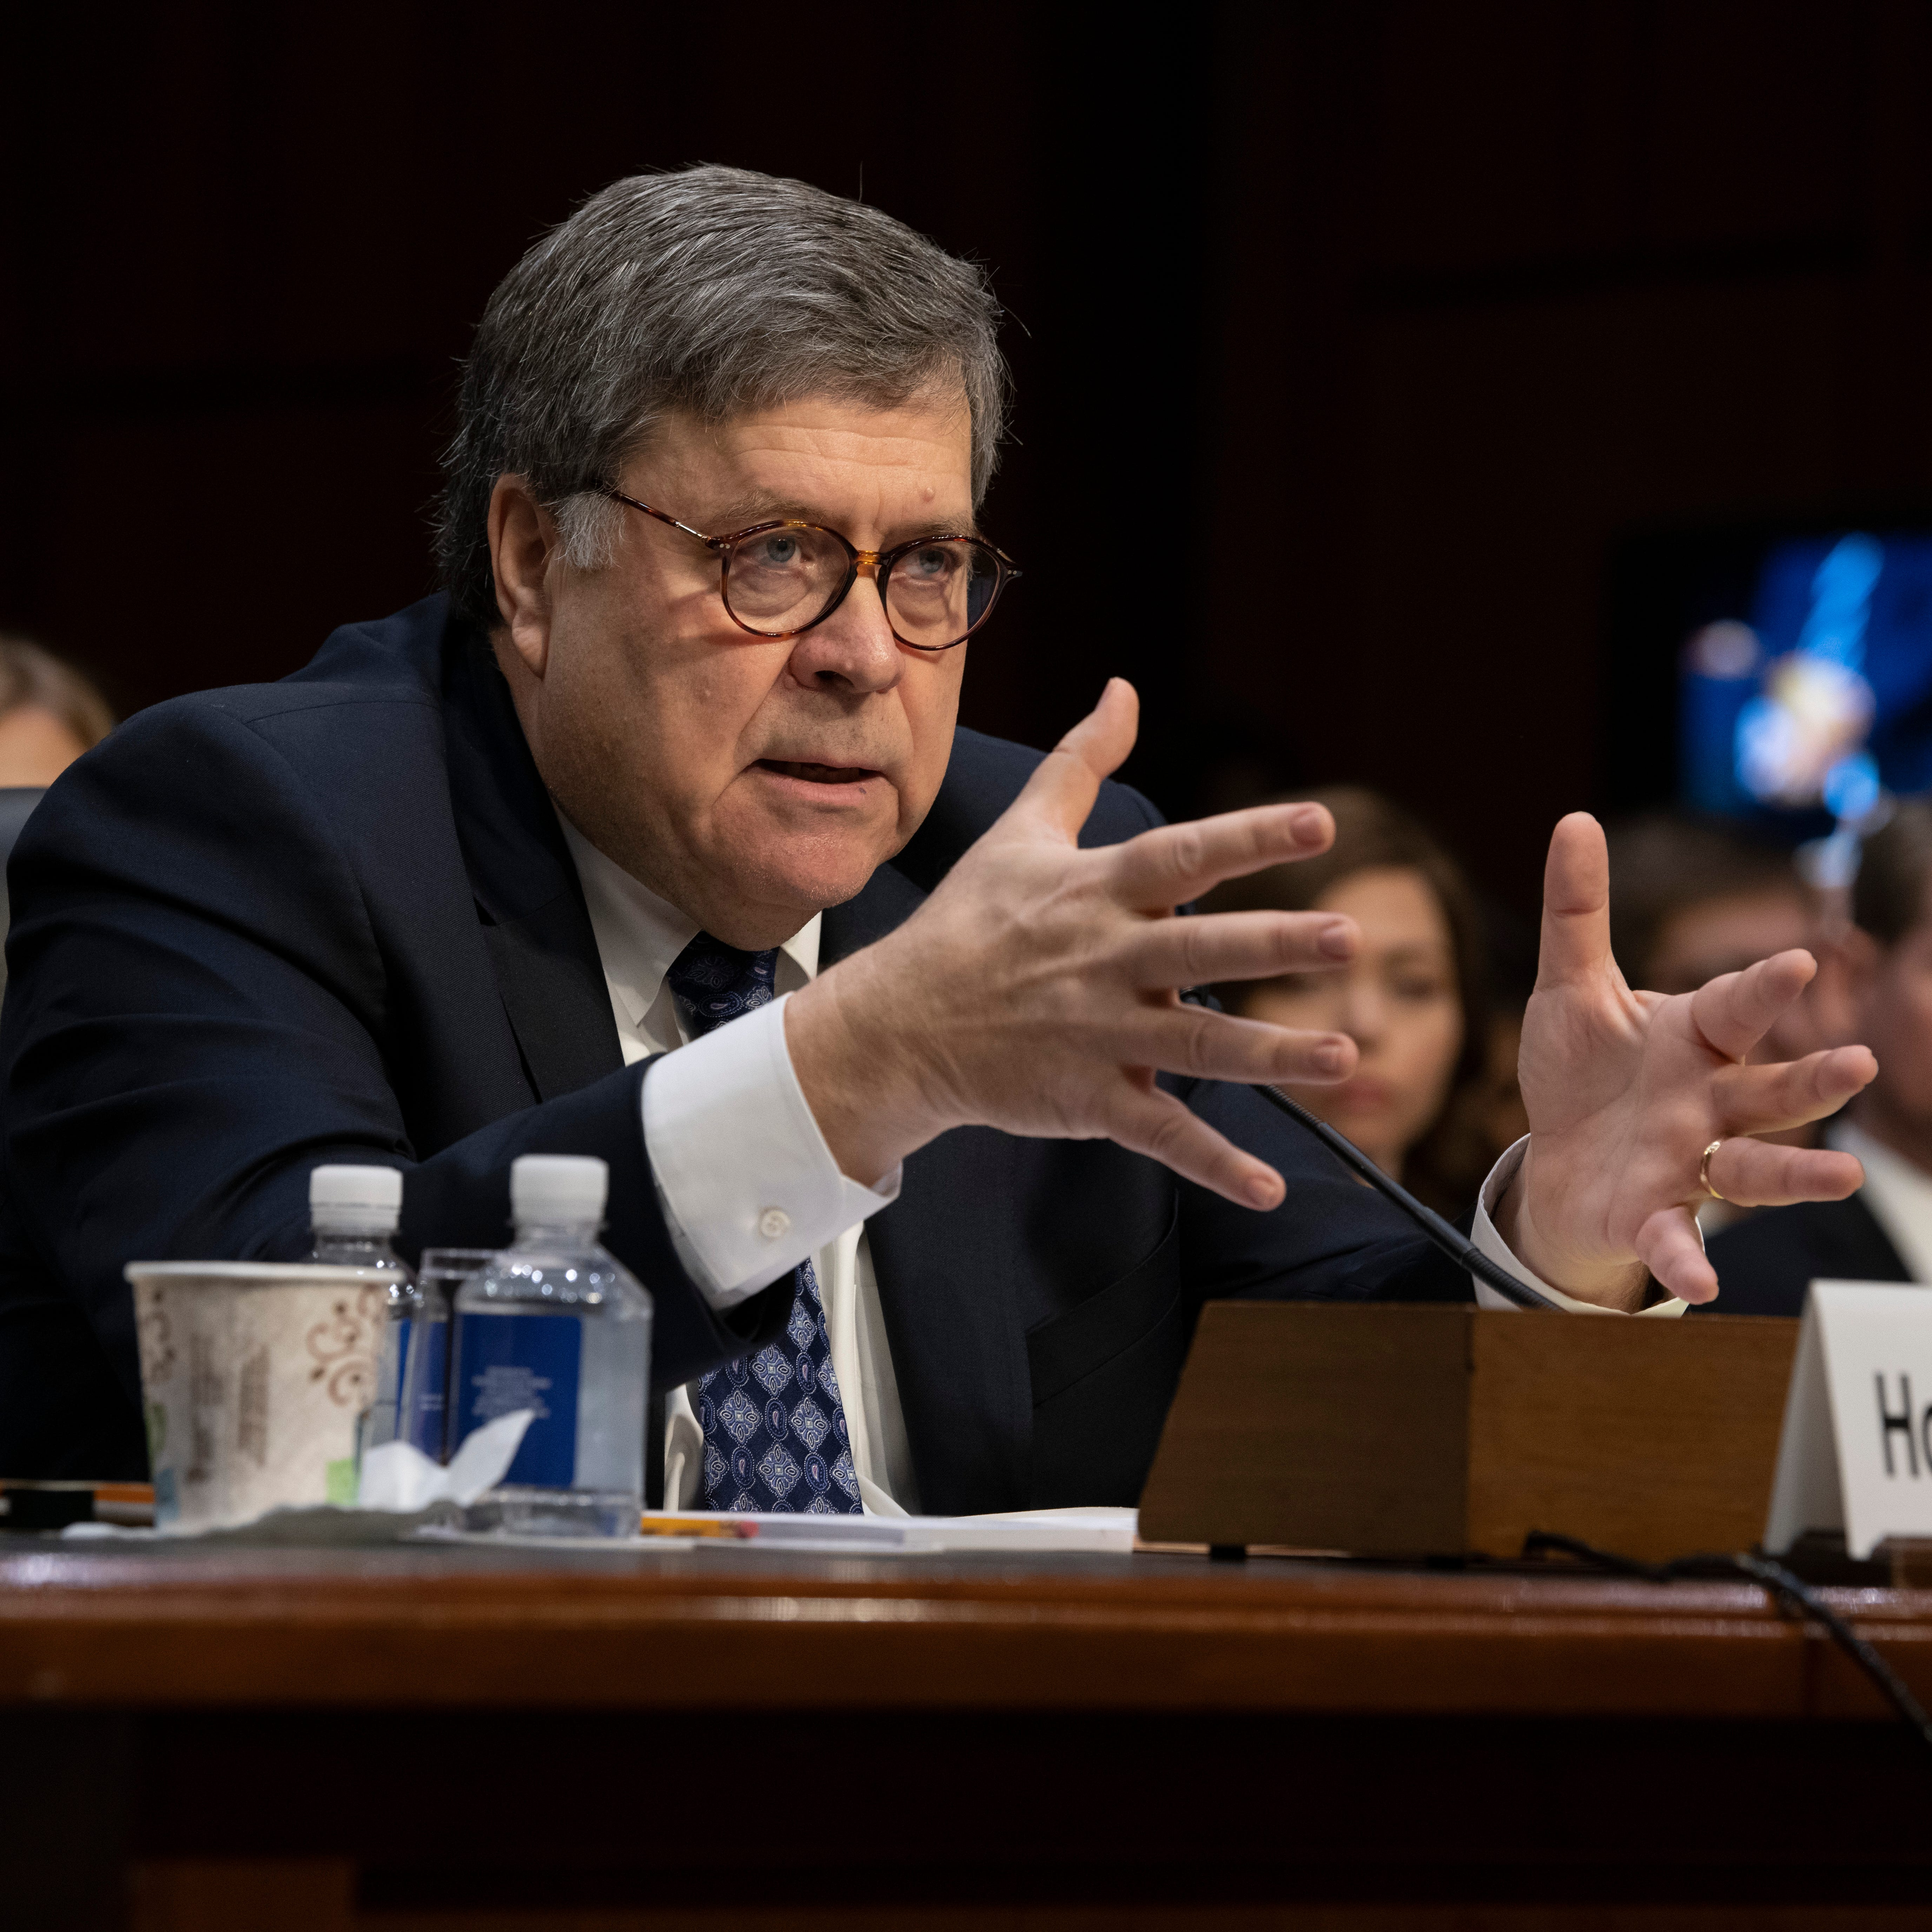 U.S. Attorney General nominee Barr on collision course with history